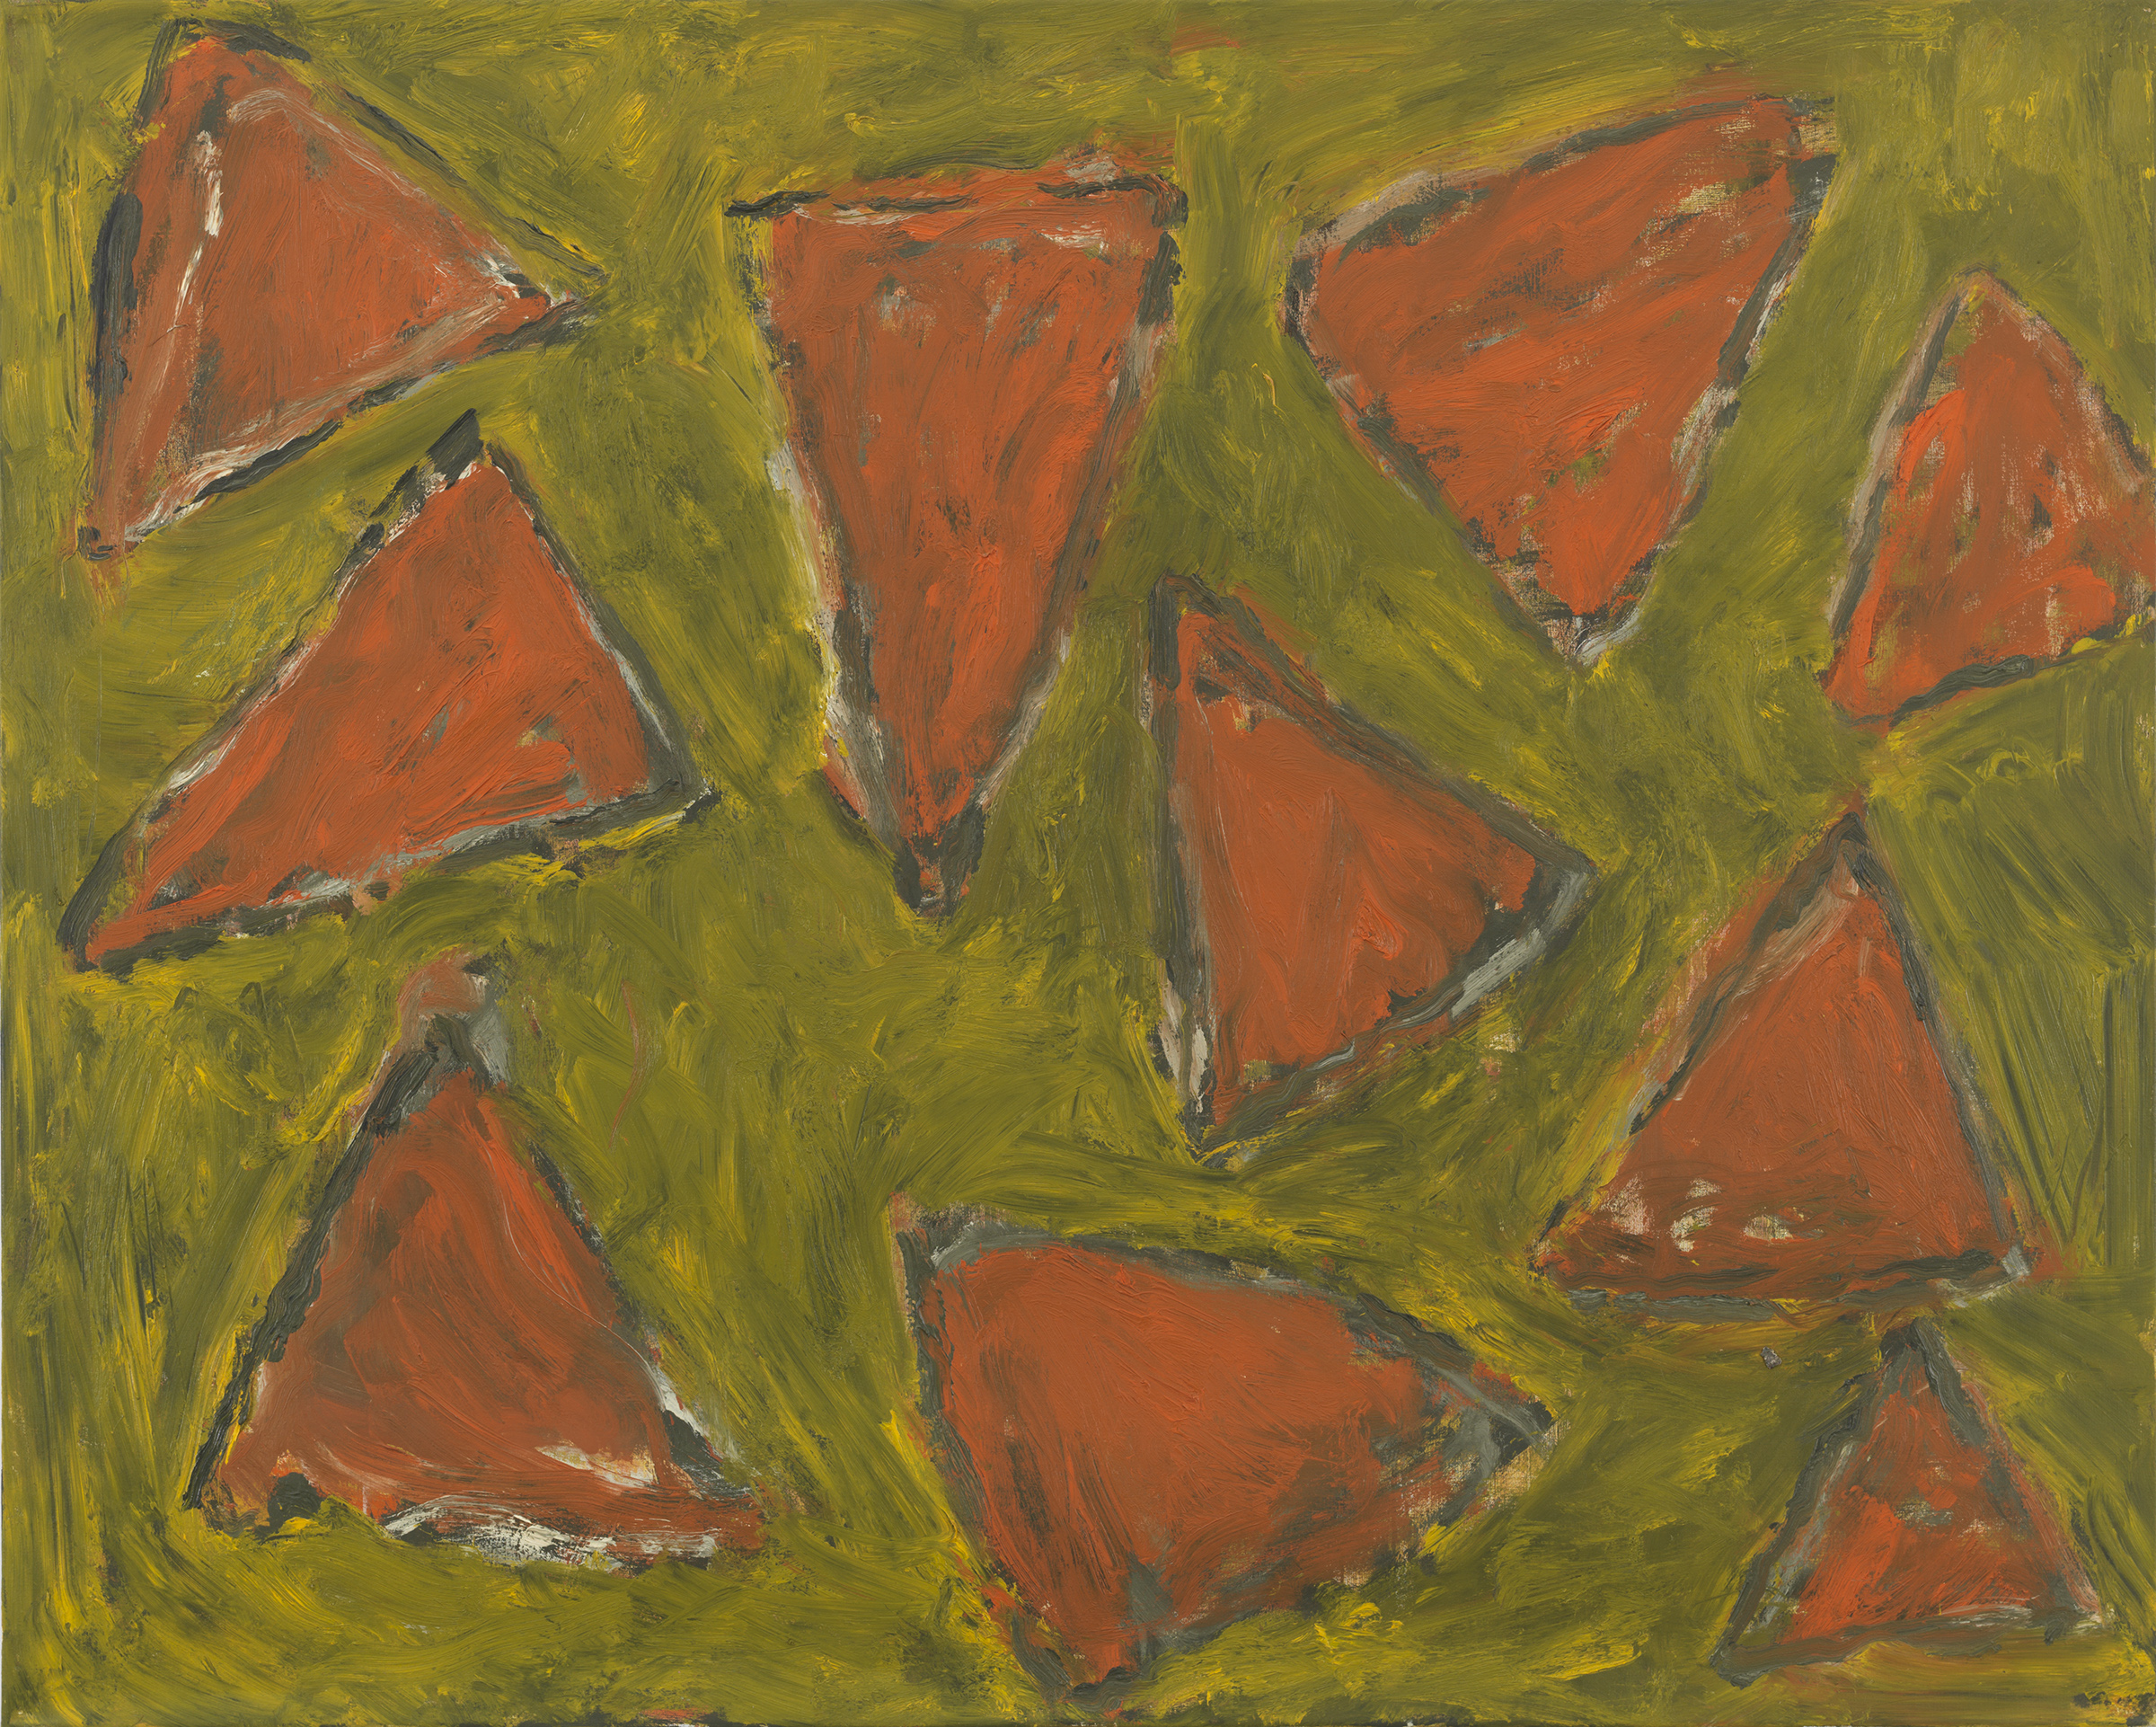 Pat Passlof  HM 11 , 2001 Oil on linen 48 x 60 inches